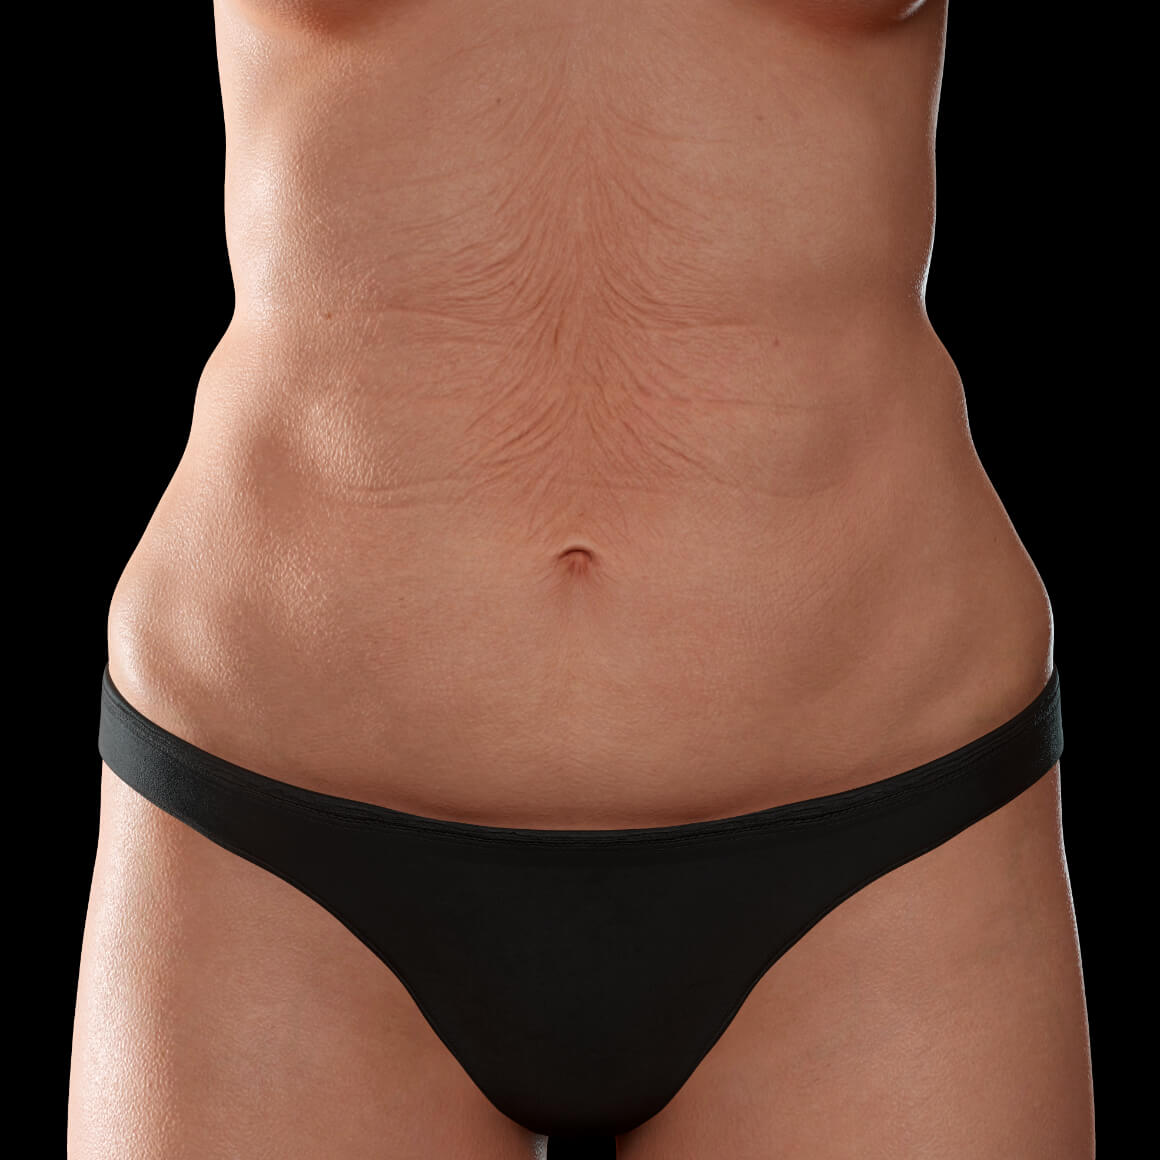 A female patient from Clinique Chloé facing front showing body skin laxity on her abdomen